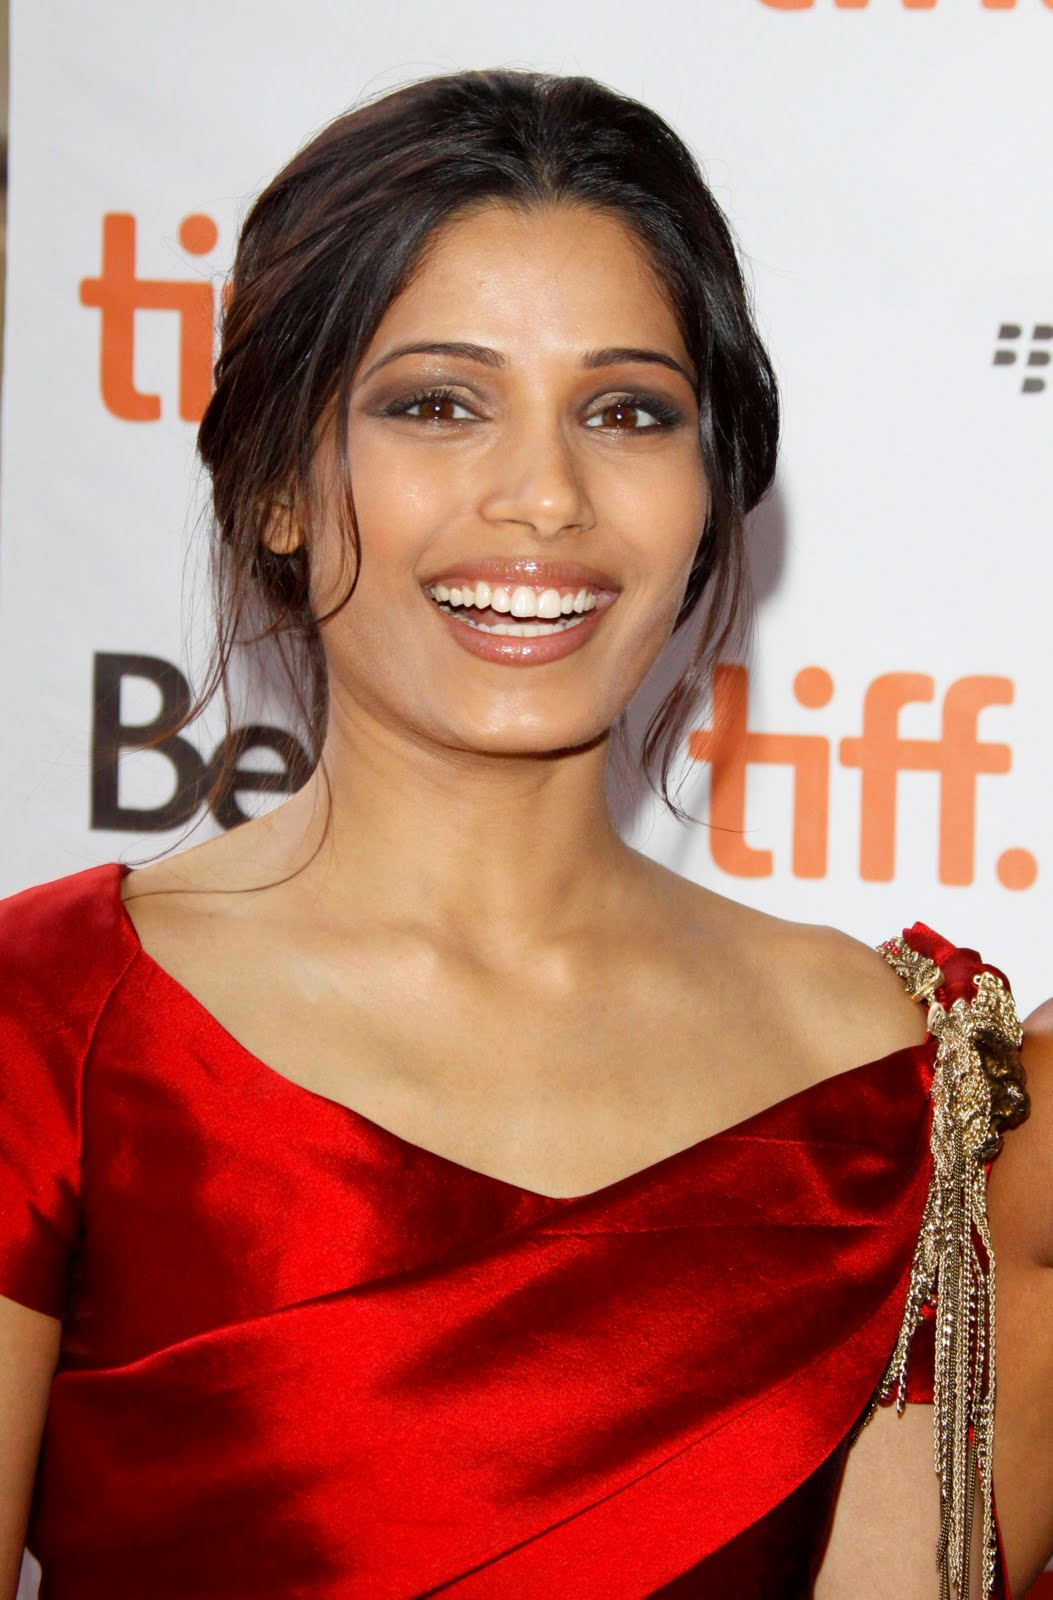 Hacked Freida Pinto nude photos 2019